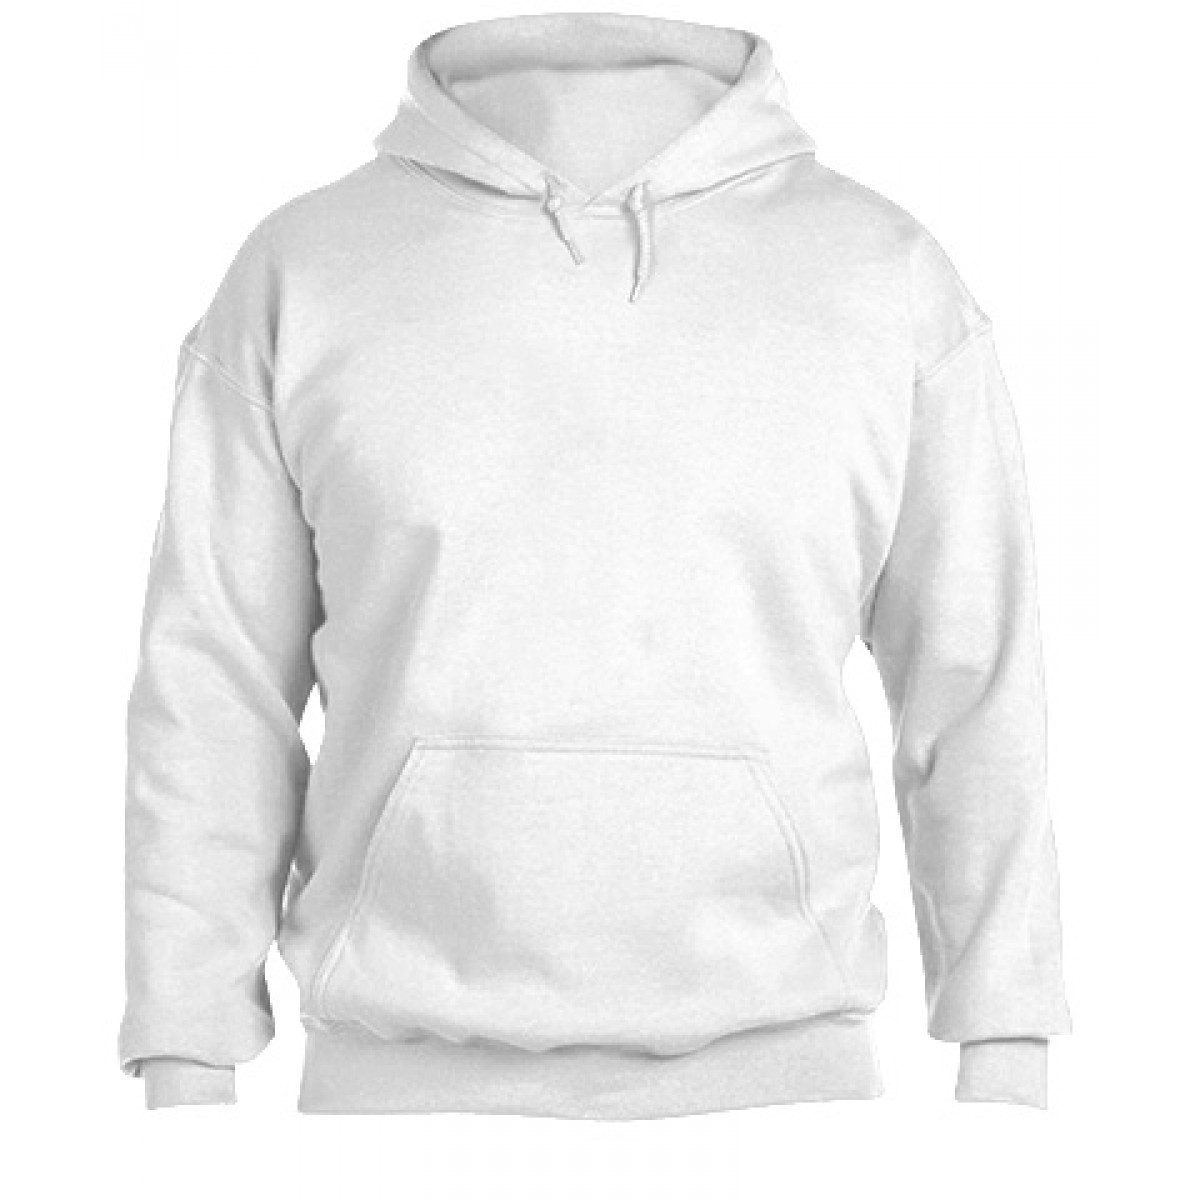 Hooded Sweatshirt 50/50 Heavy Blend-White-XS